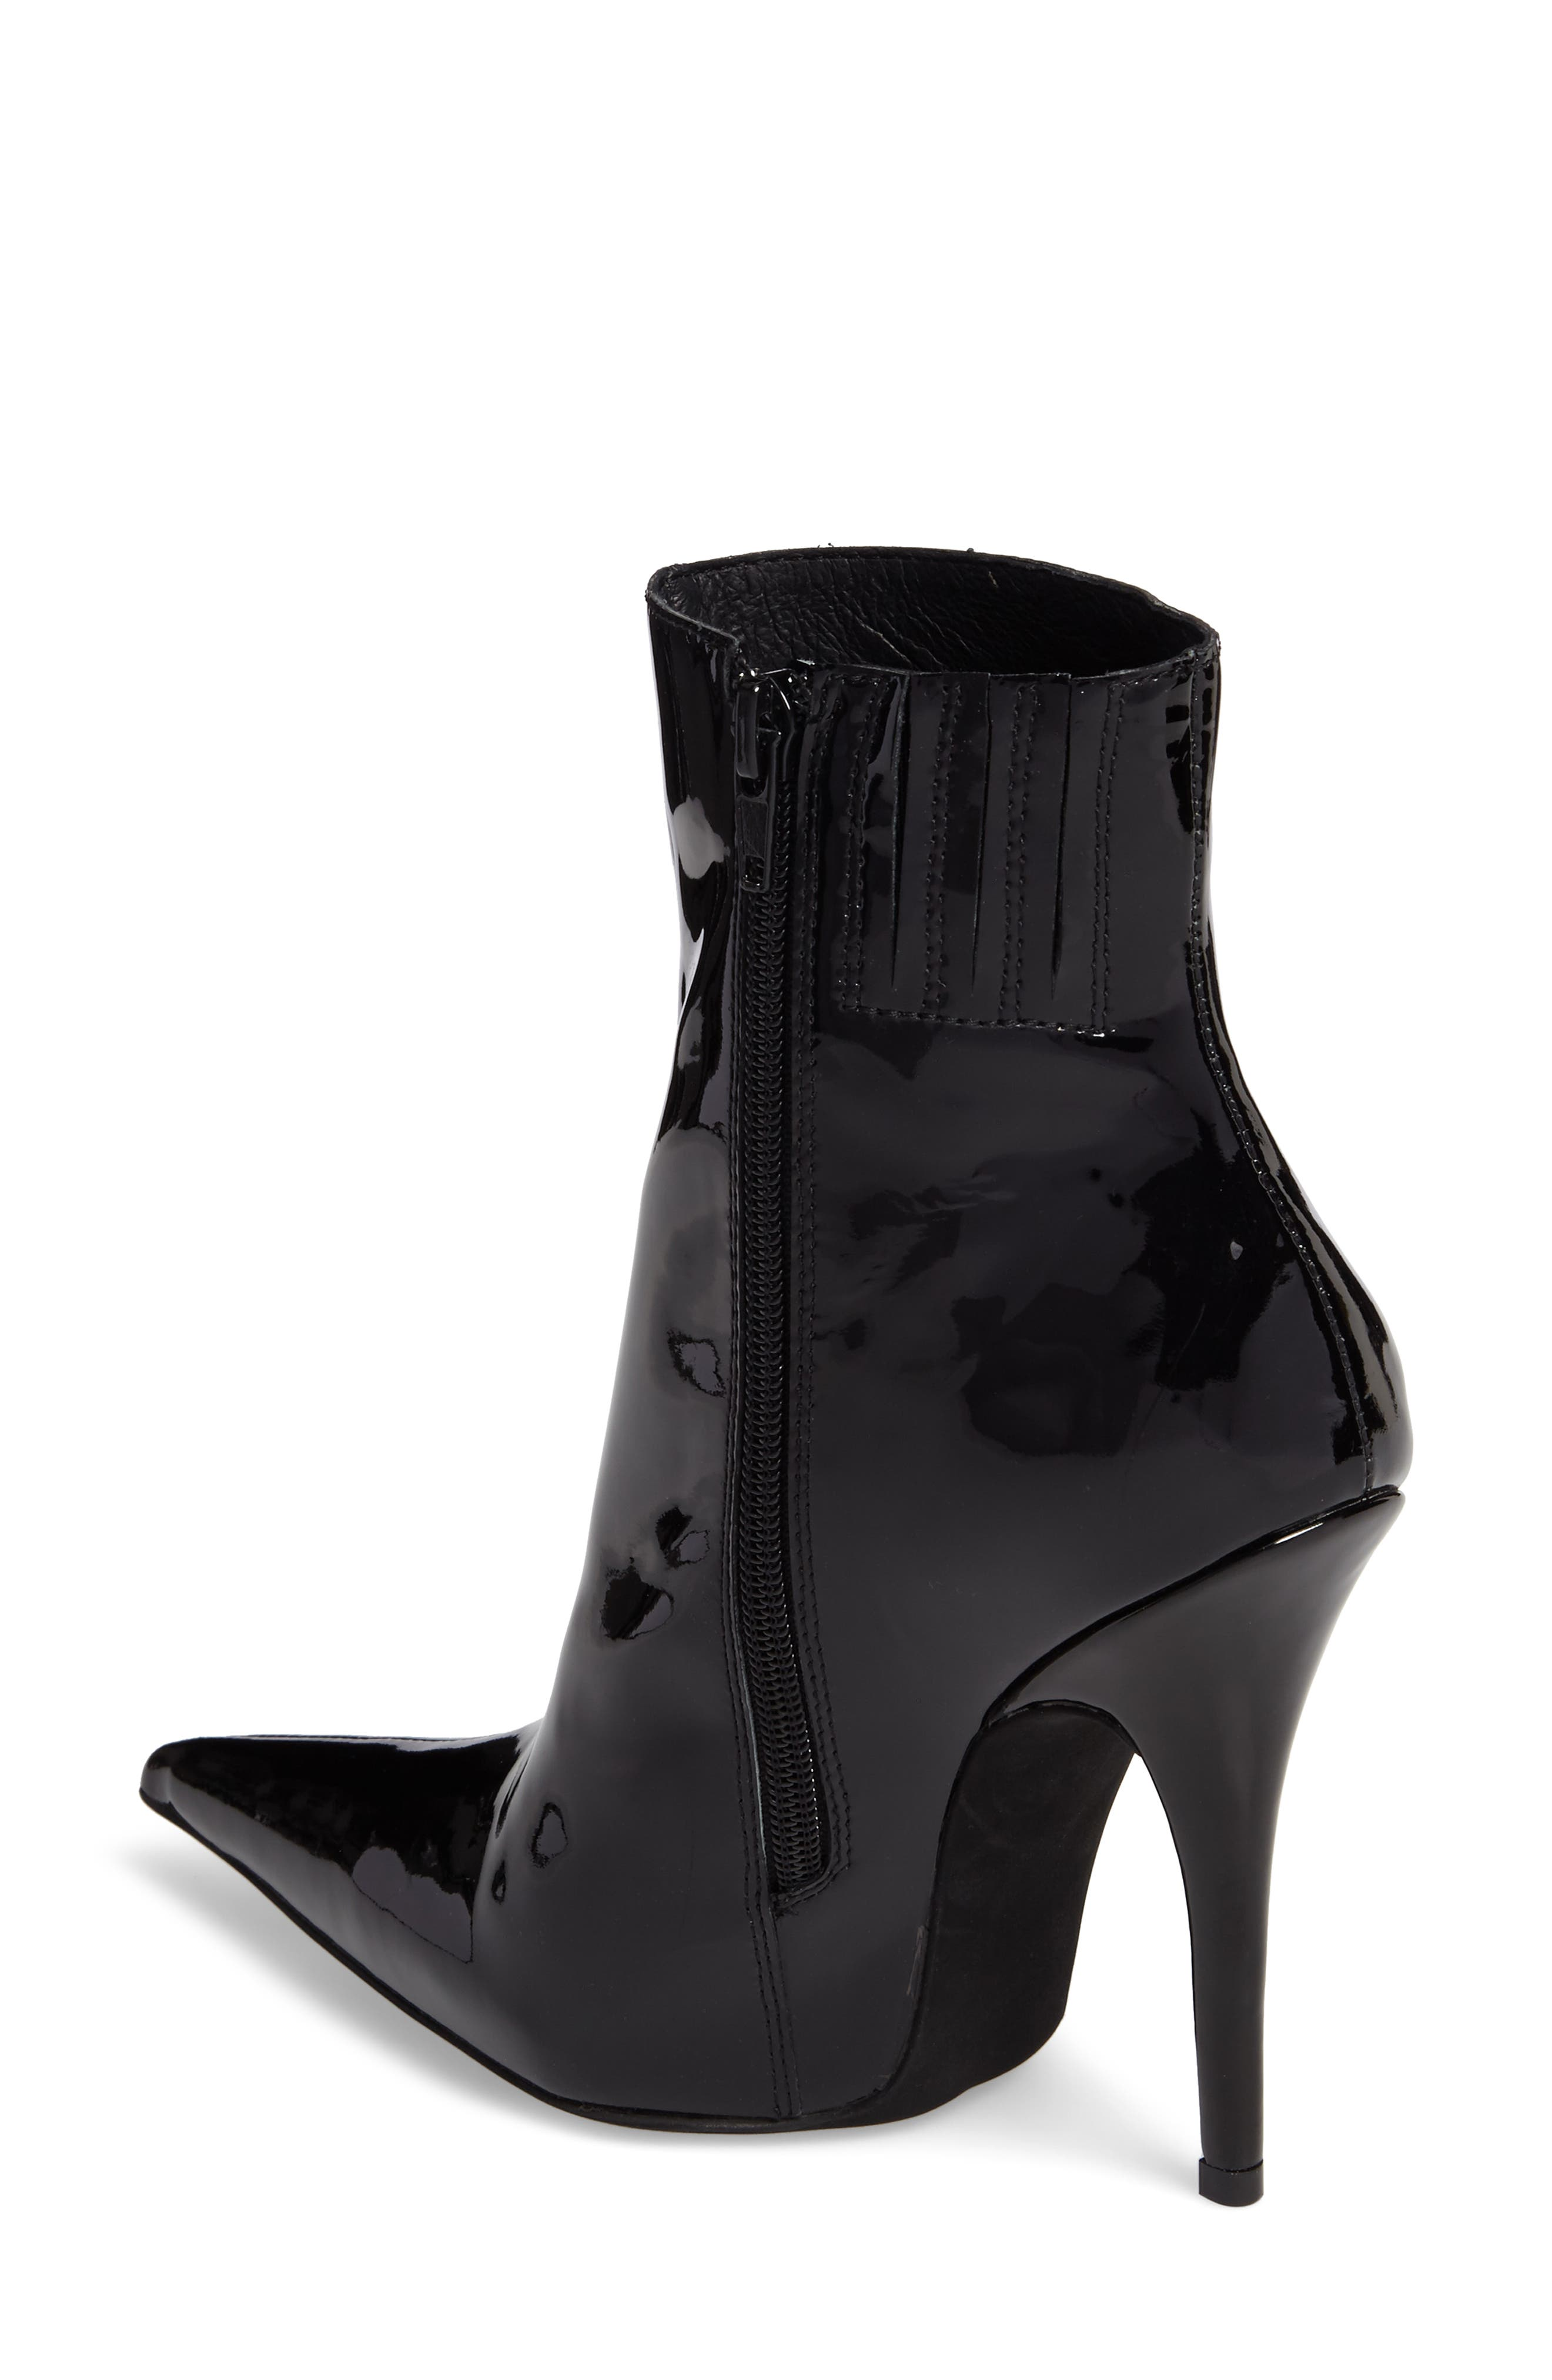 Vedette Pointy Toe Booties,                             Alternate thumbnail 2, color,                             Black Patent